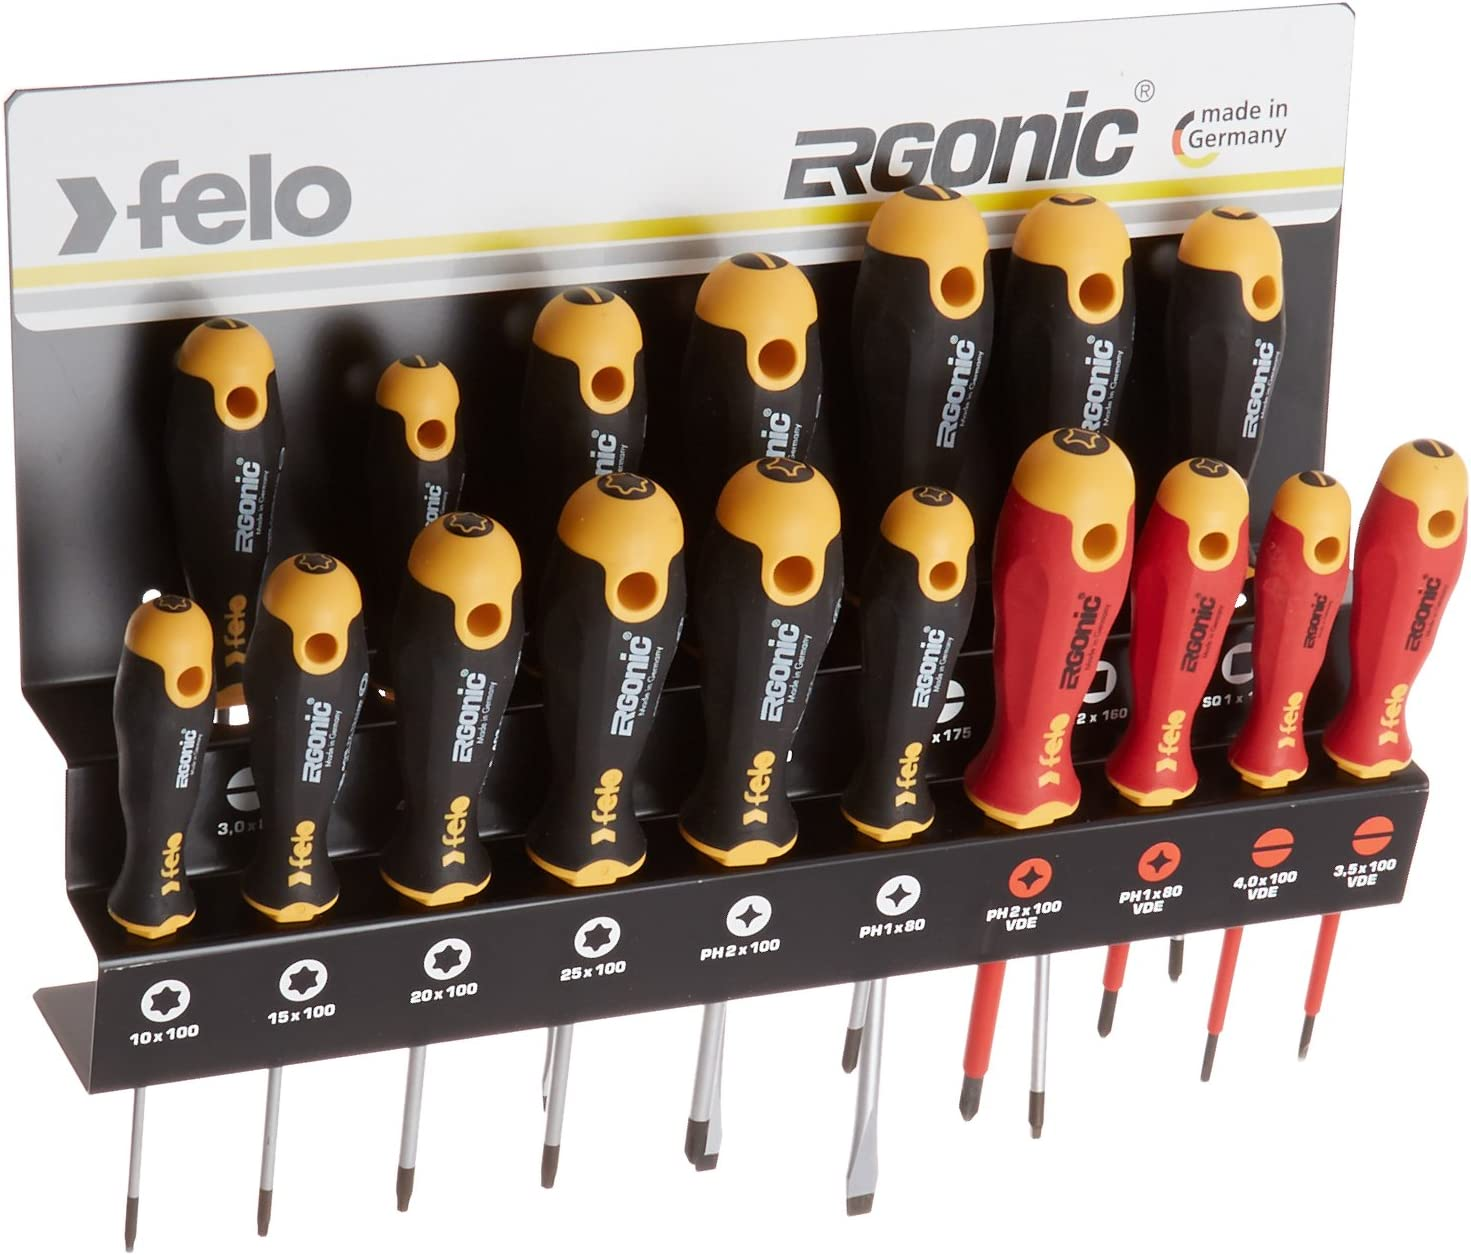 Felo 0715761391 Ergonomic Screwdriver Set With Steel Rack includes Slotted